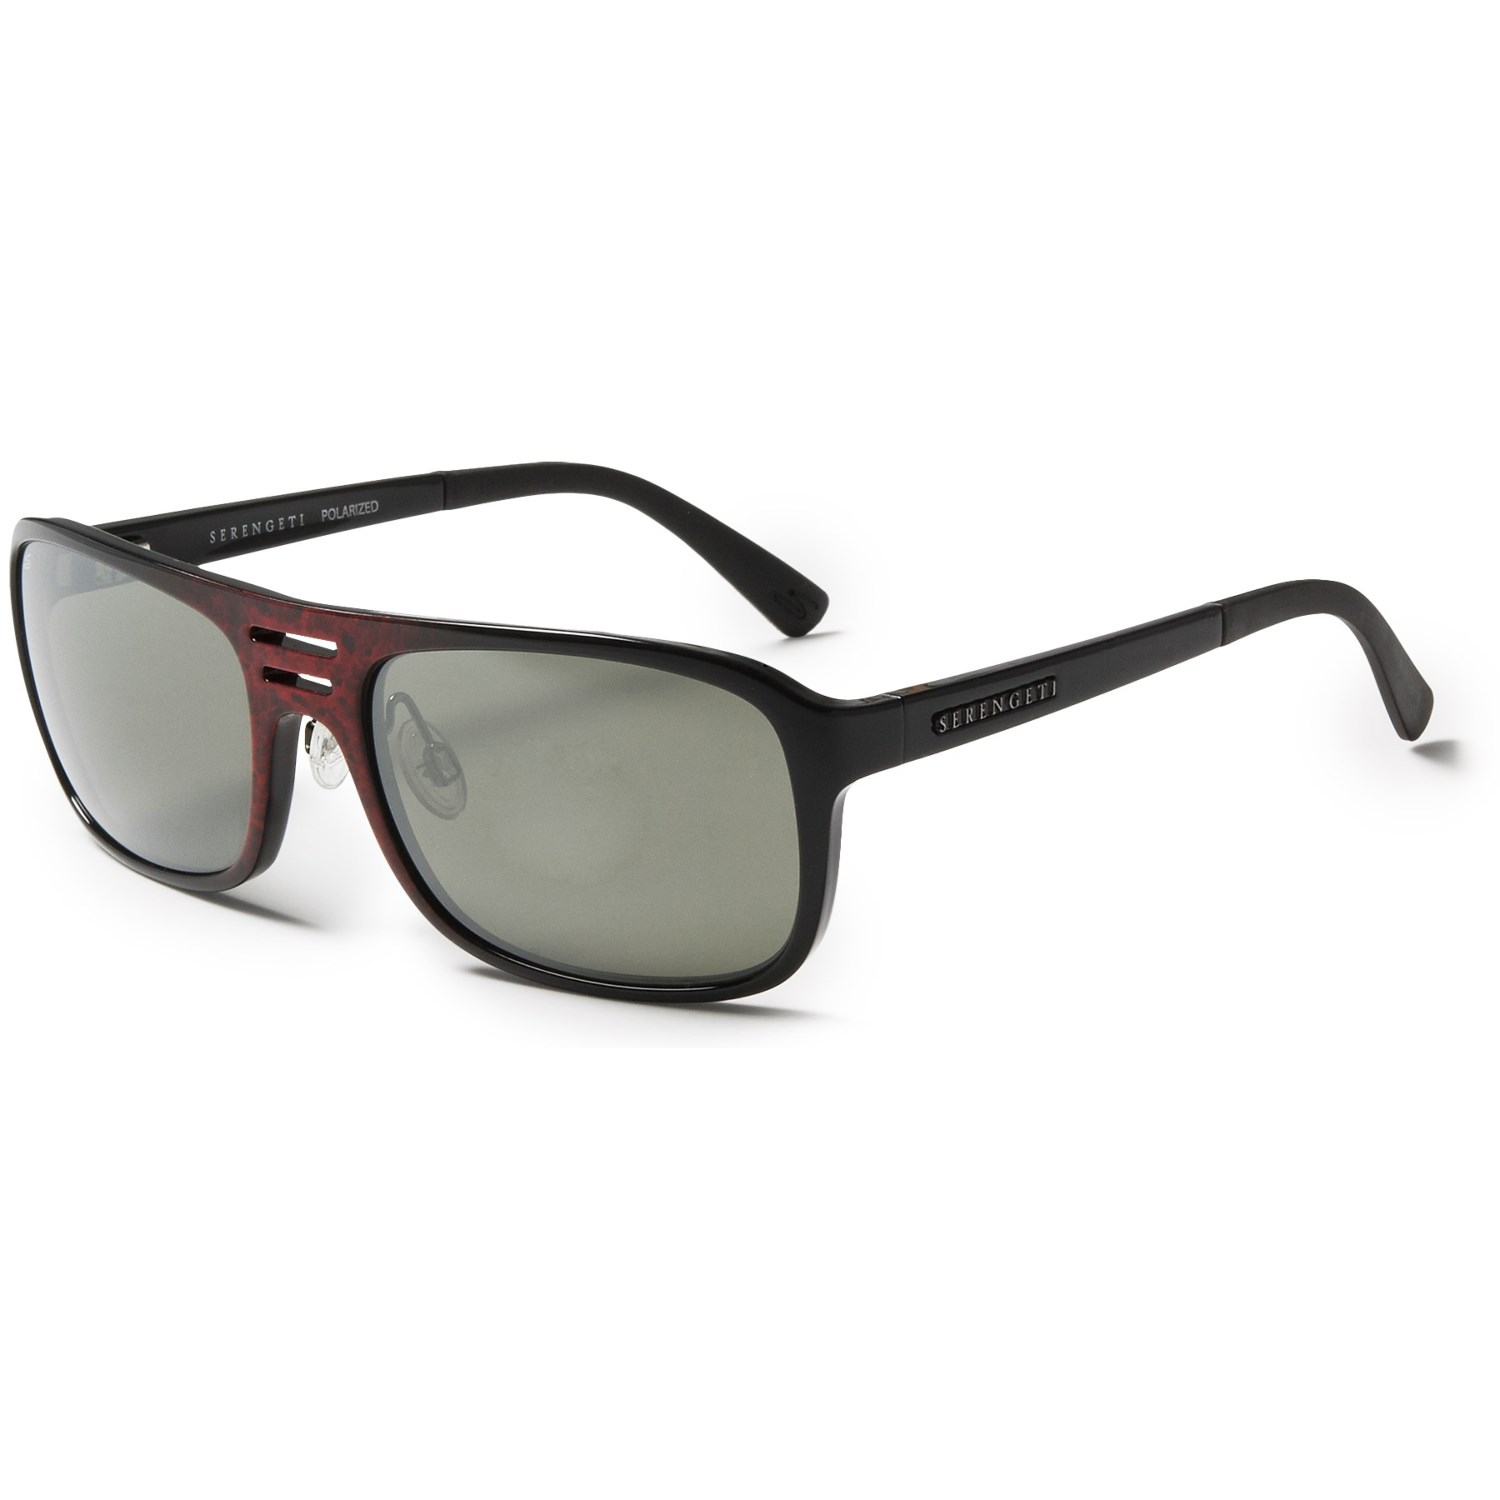 Serengeti Sunglasses Review  serengeti lorenzo sunglasses polarized photochromic glass